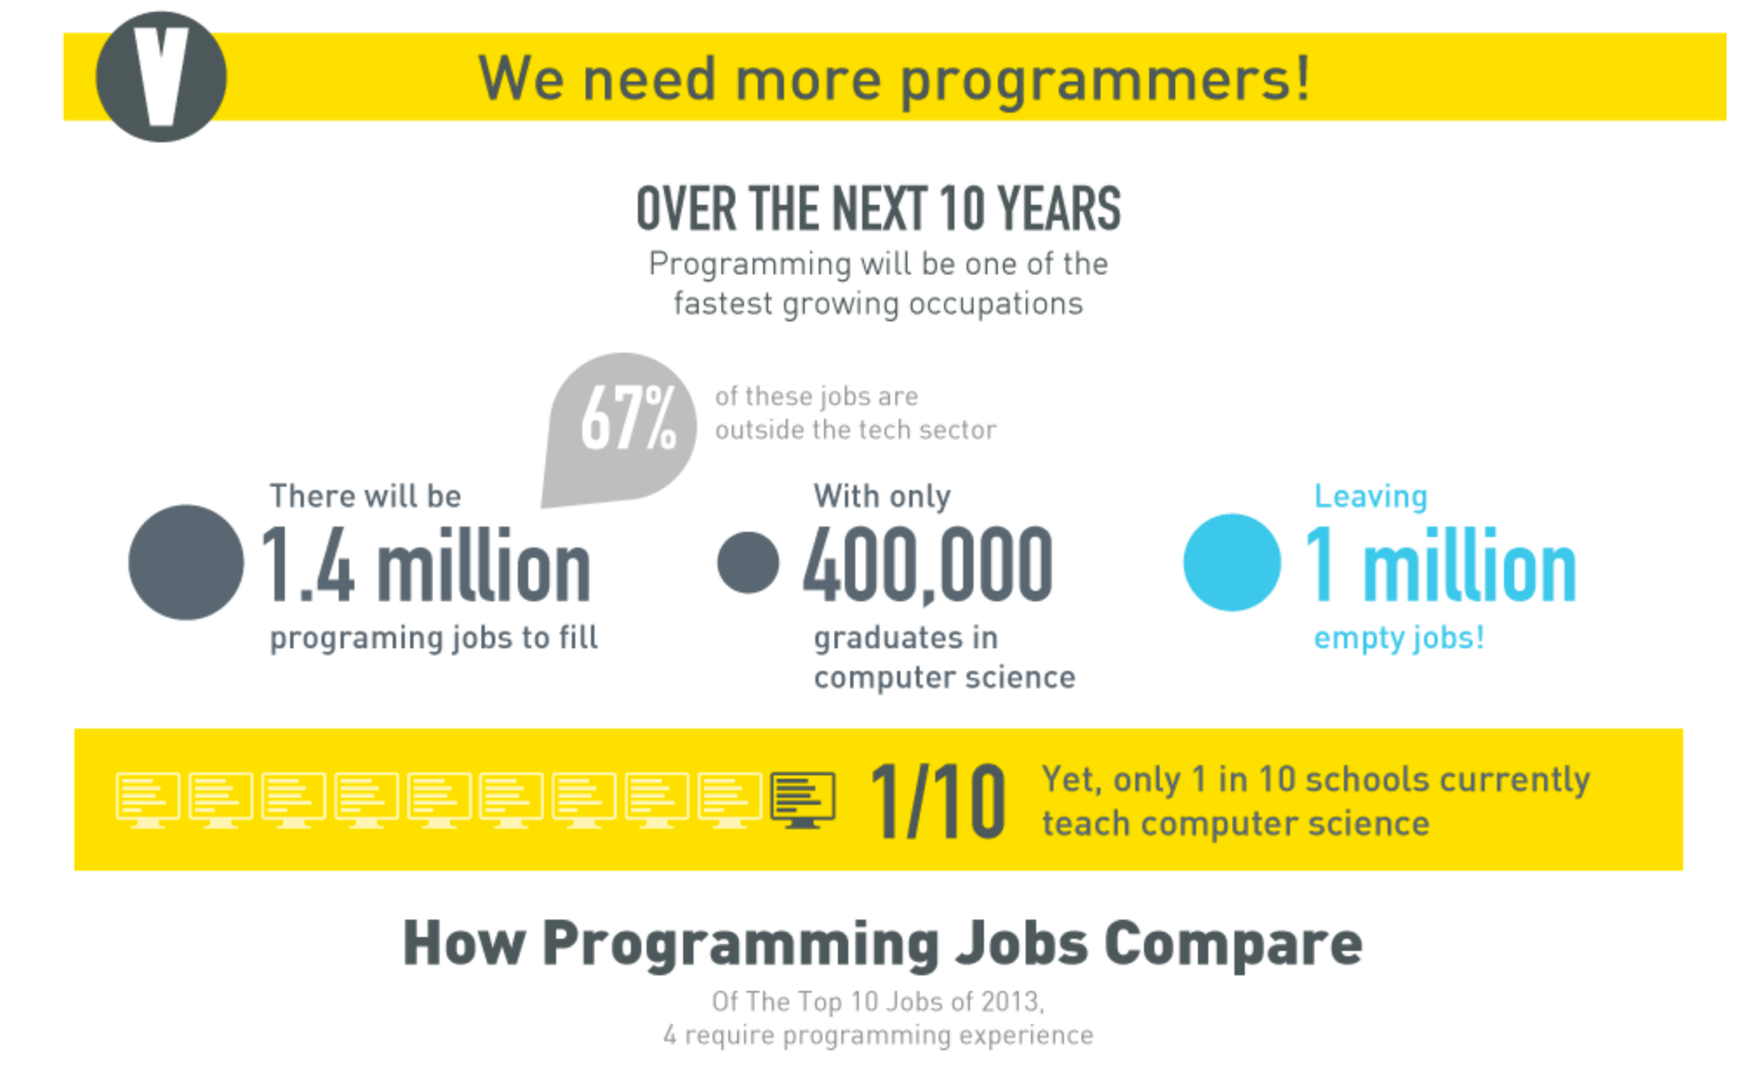 logo showing how programming will have over 1.4 million jobs to fill over the next 10 years.